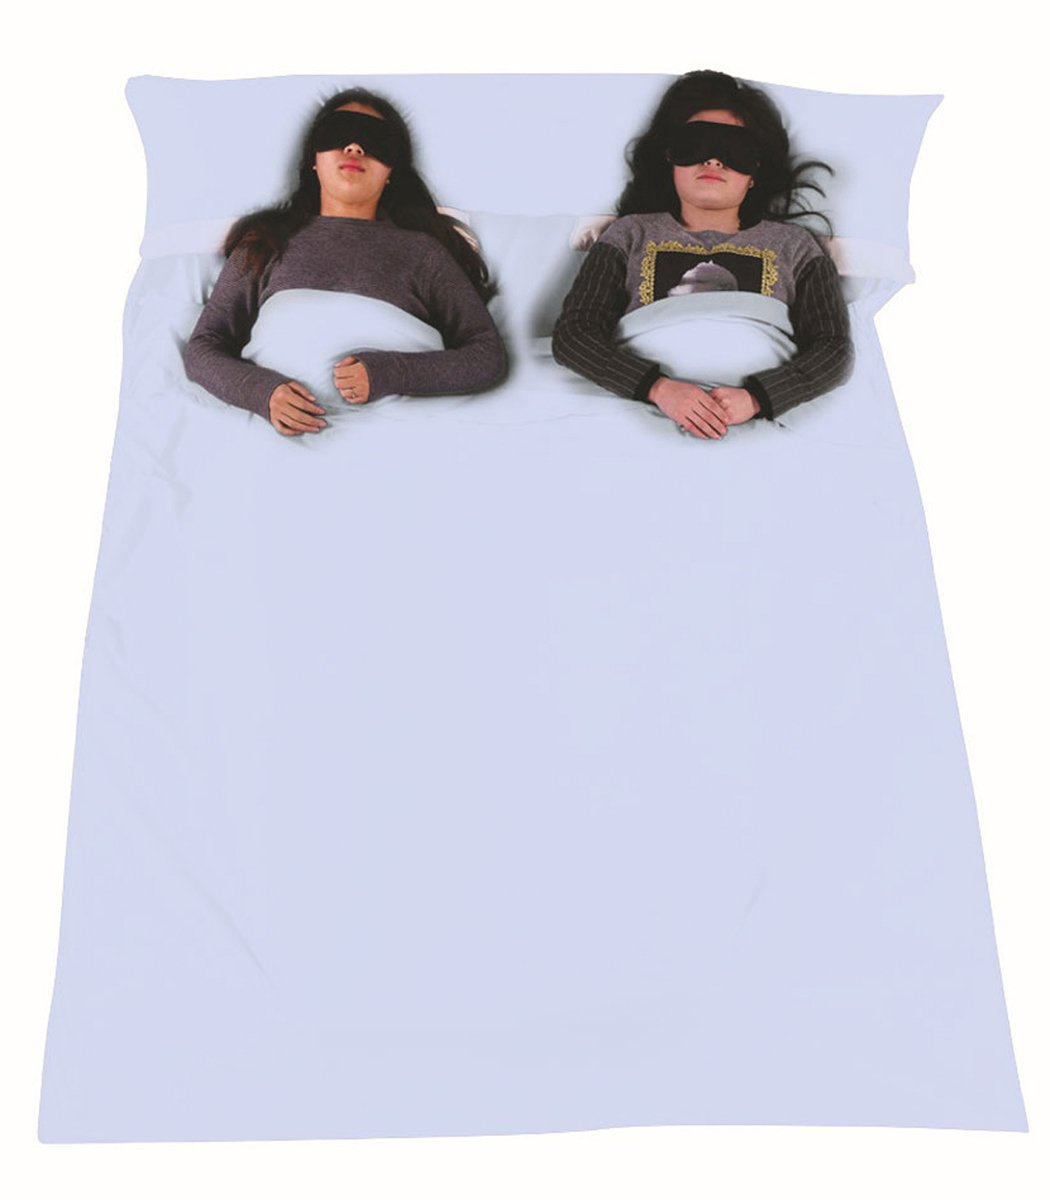 Outgeek Double Sleeping Bag Liner Lightweight 2 Person Sleep Bag Convenient for Camping Travel Hotel by Outgeek